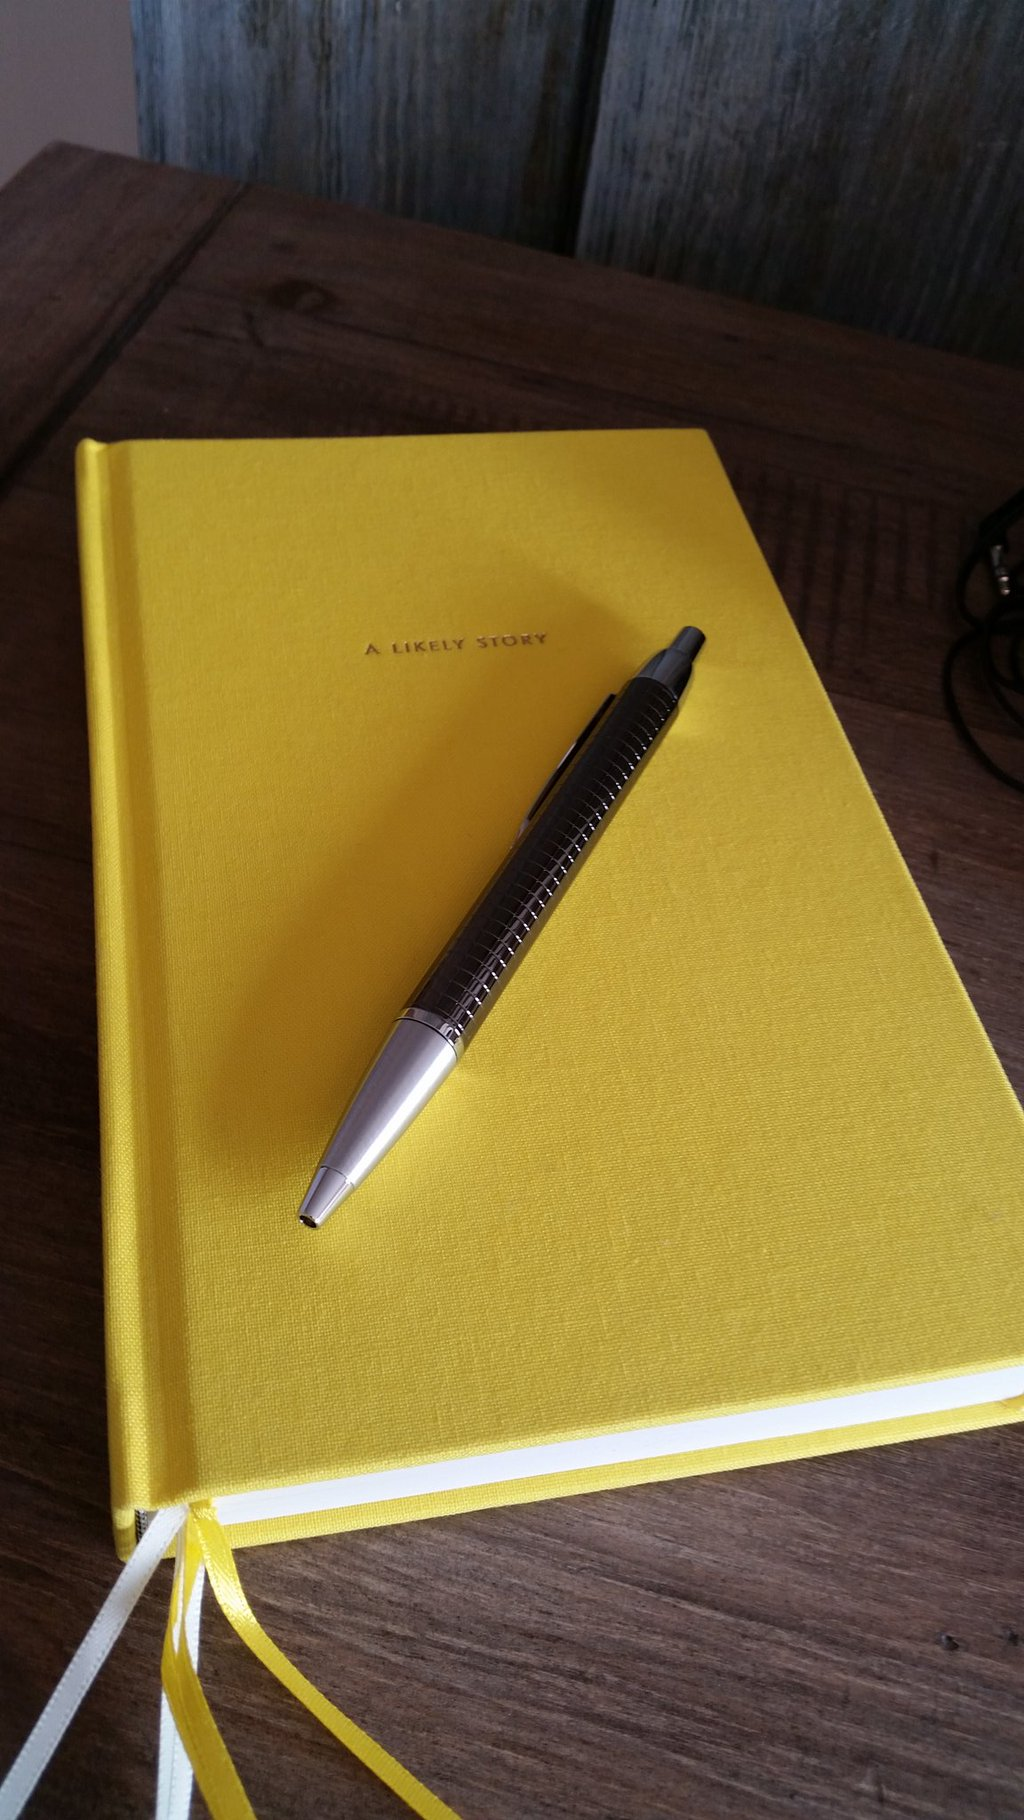 My shiny new notebook and pen